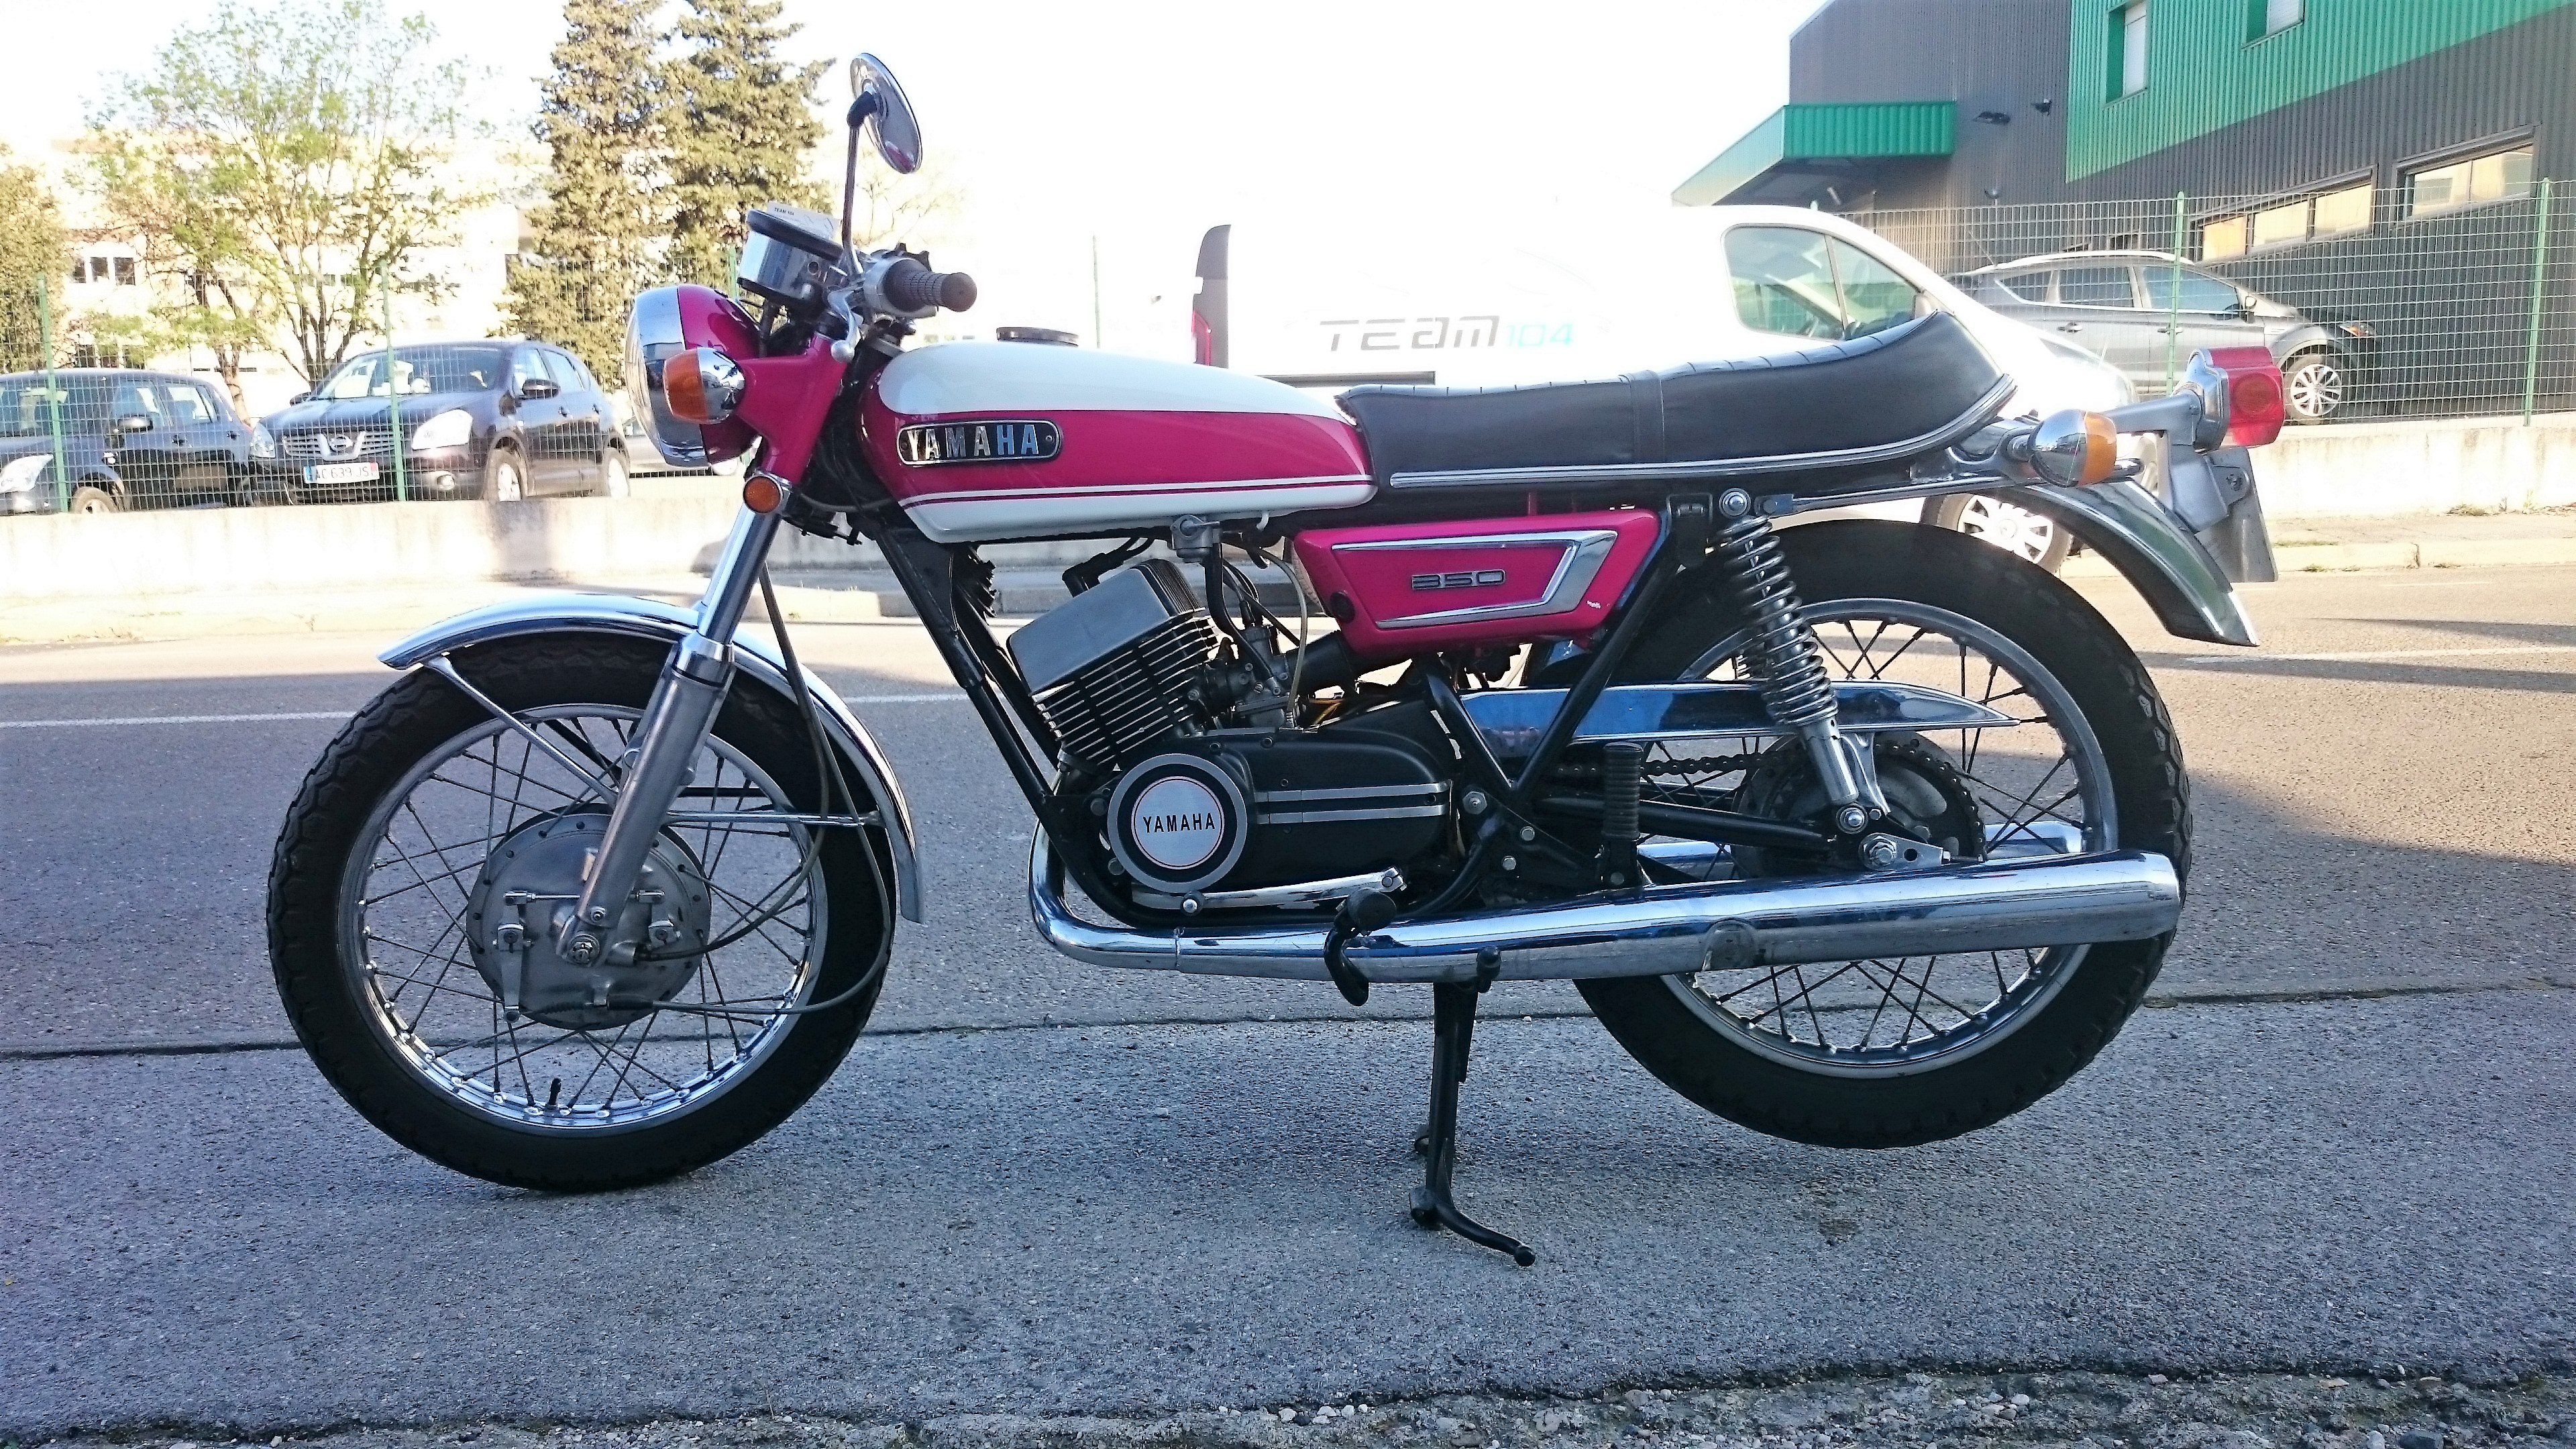 yamaha 350 yr5 yamaha team104 vente achat motos occasions vintage pi ces. Black Bedroom Furniture Sets. Home Design Ideas